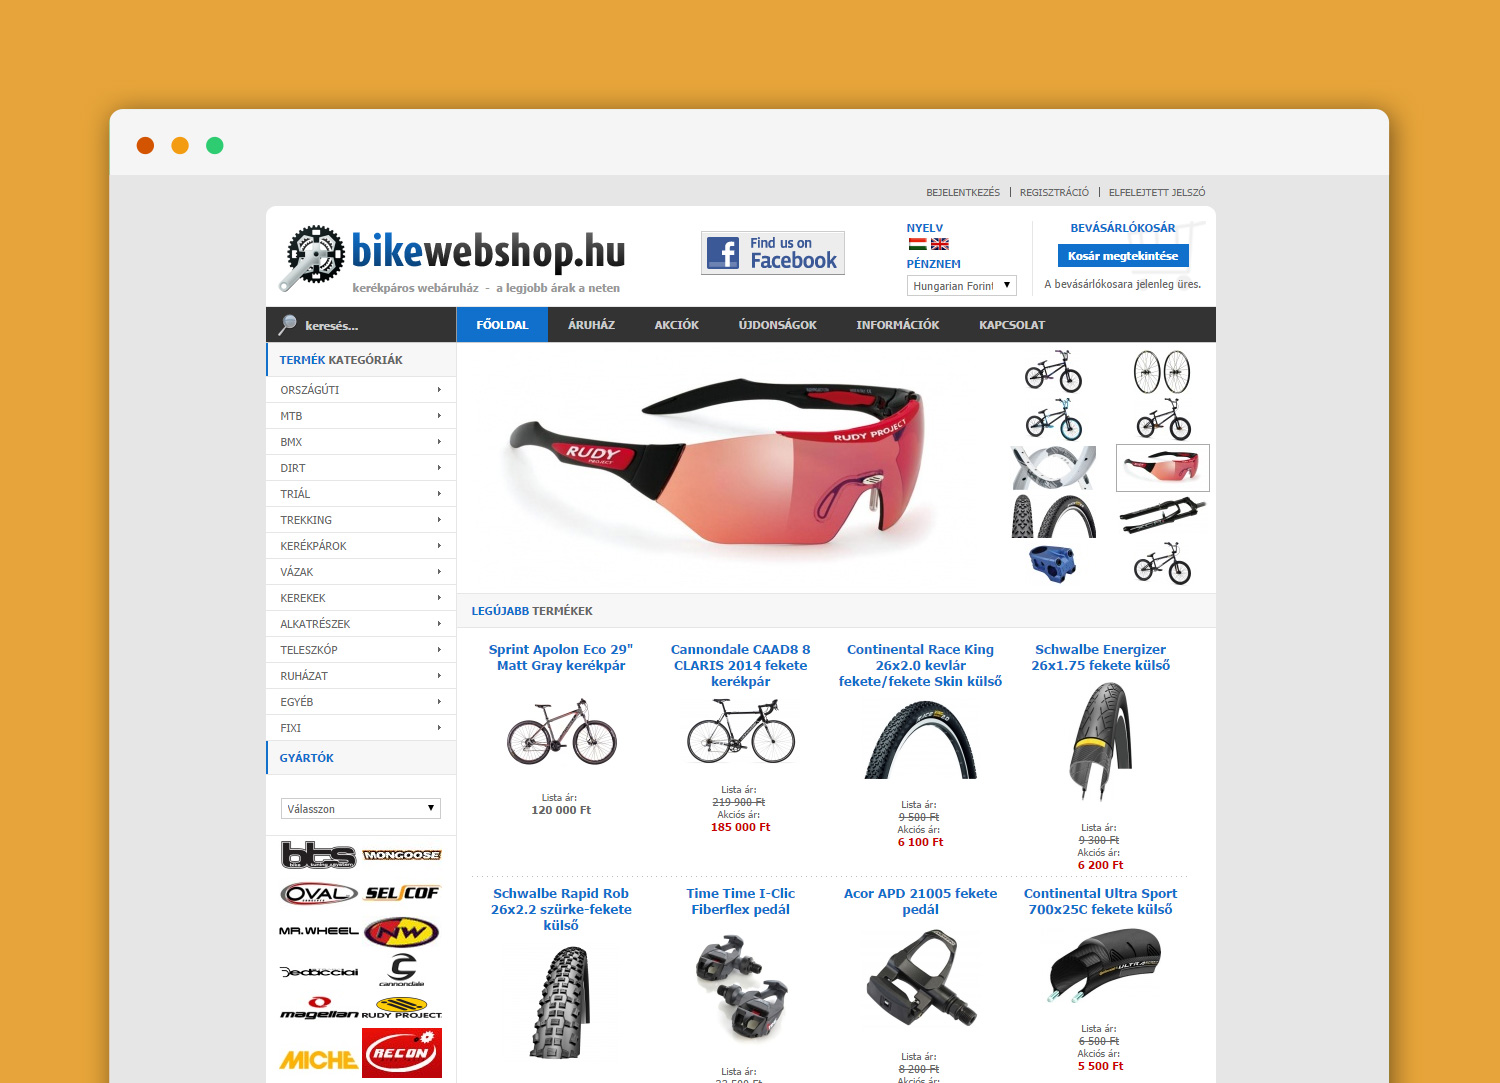 bikewebshop.hu website